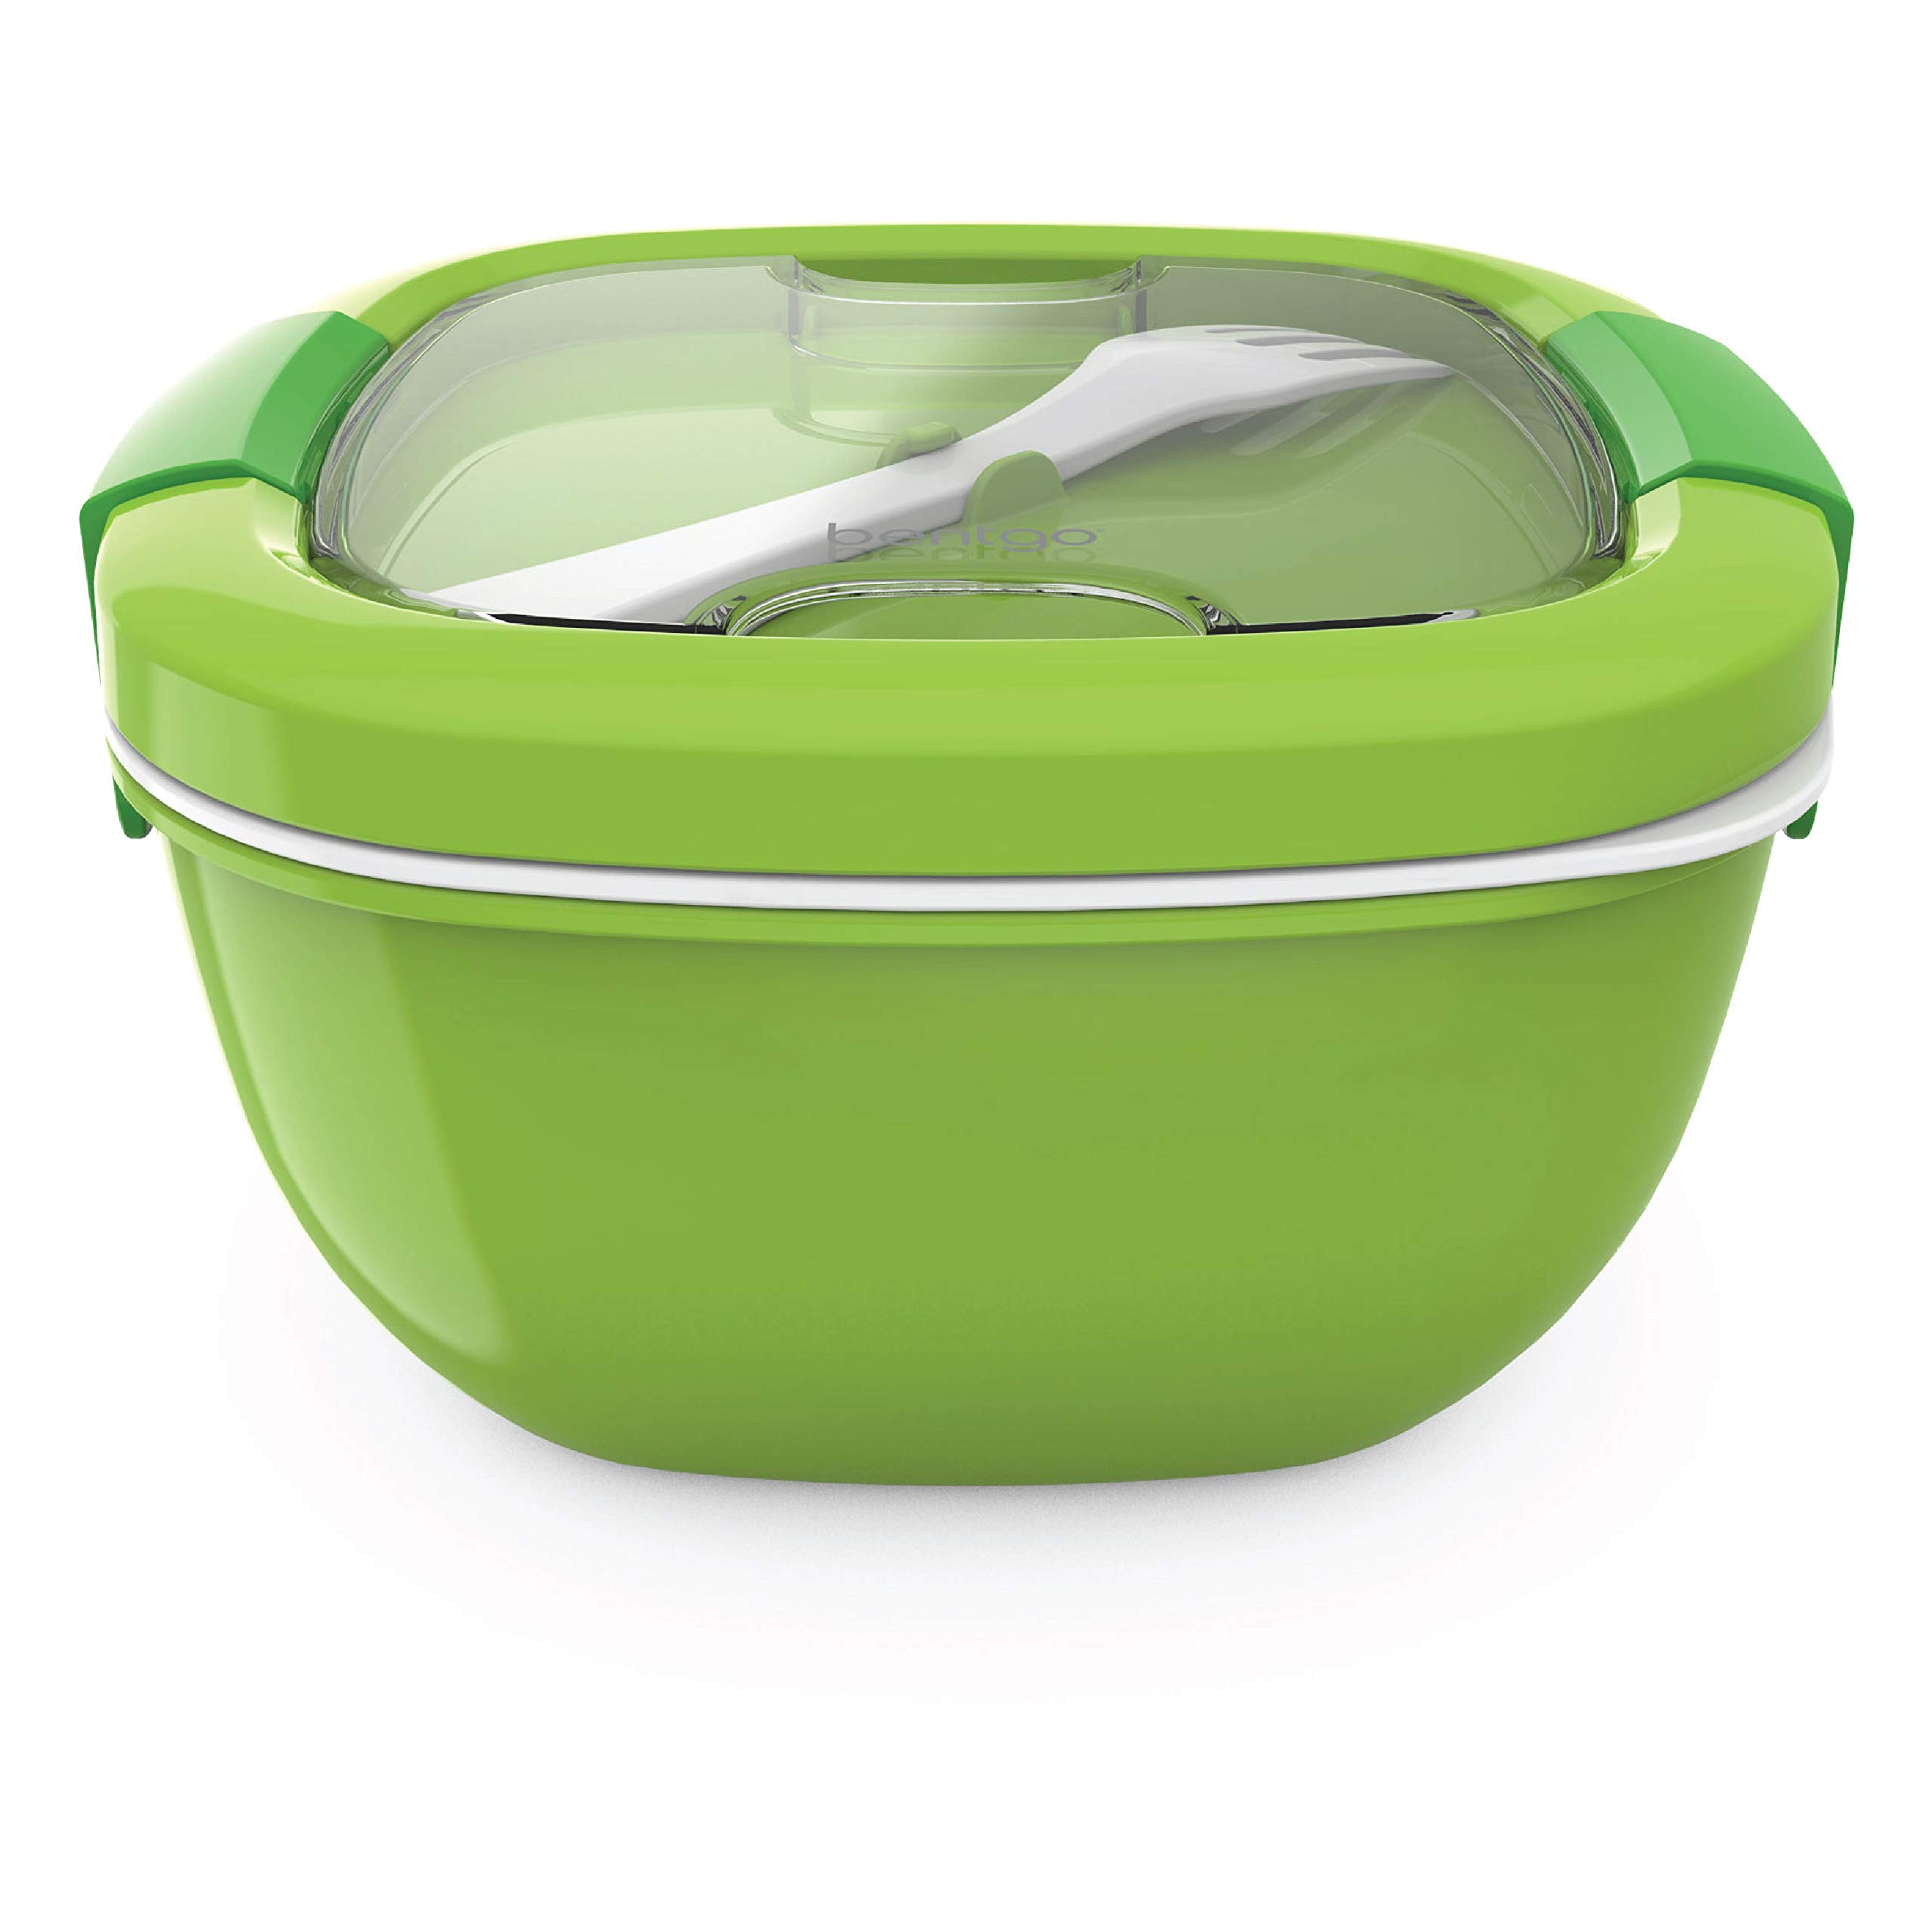 Bentgo Salad (Green) BPA-Free Lunch Container with Large 54-oz Salad Bowl, 3-Compartment Bento-Style Tray for Salad Toppings and Snacks, 3-oz Sauce Container for Dressings, and Built-In Reusable Fork by Bentgo (Image #4)